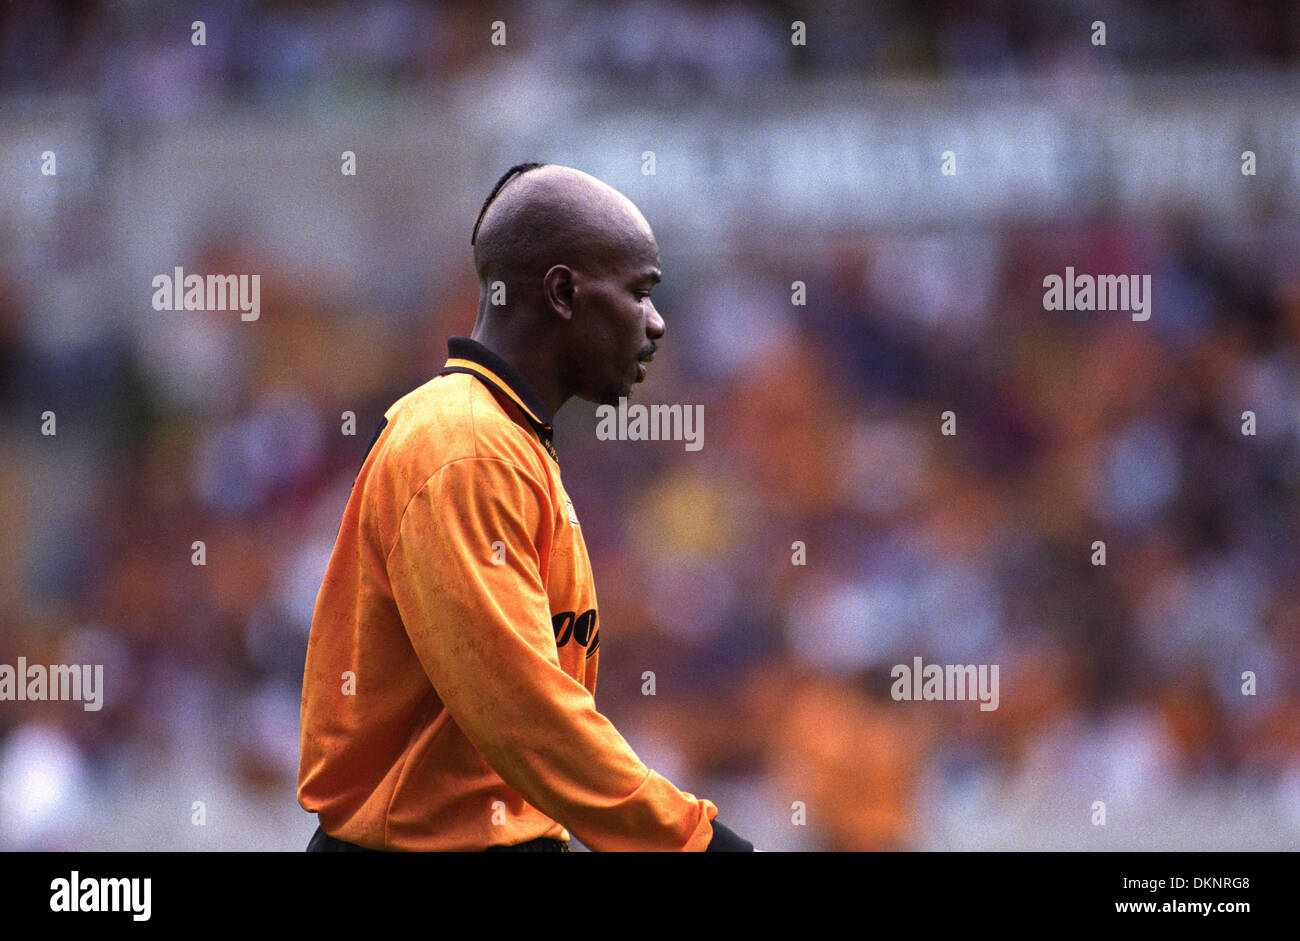 Tony Daley footballer with new hairstyle 1995 Stock Photo